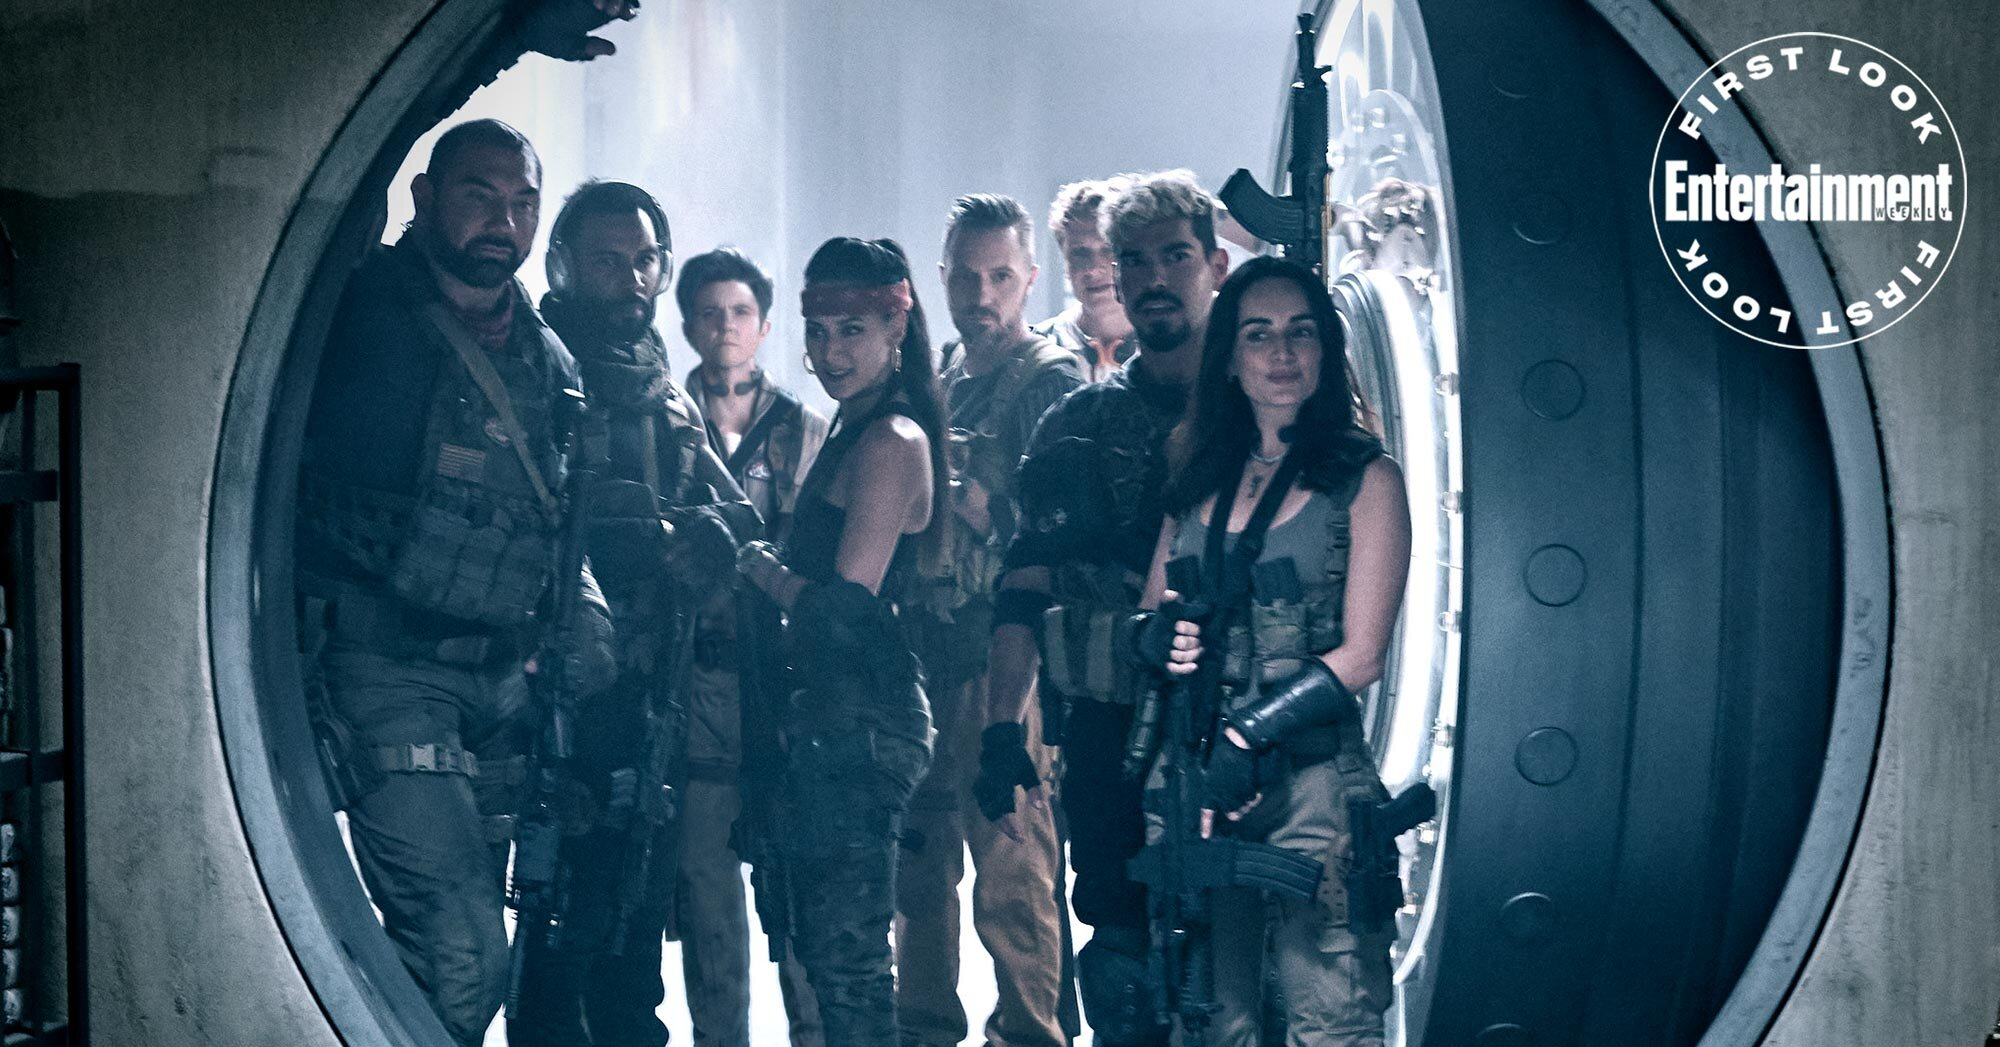 Zack Snyder reveals a first look at his zombie heist Netflix movie 'Army of the Dead'